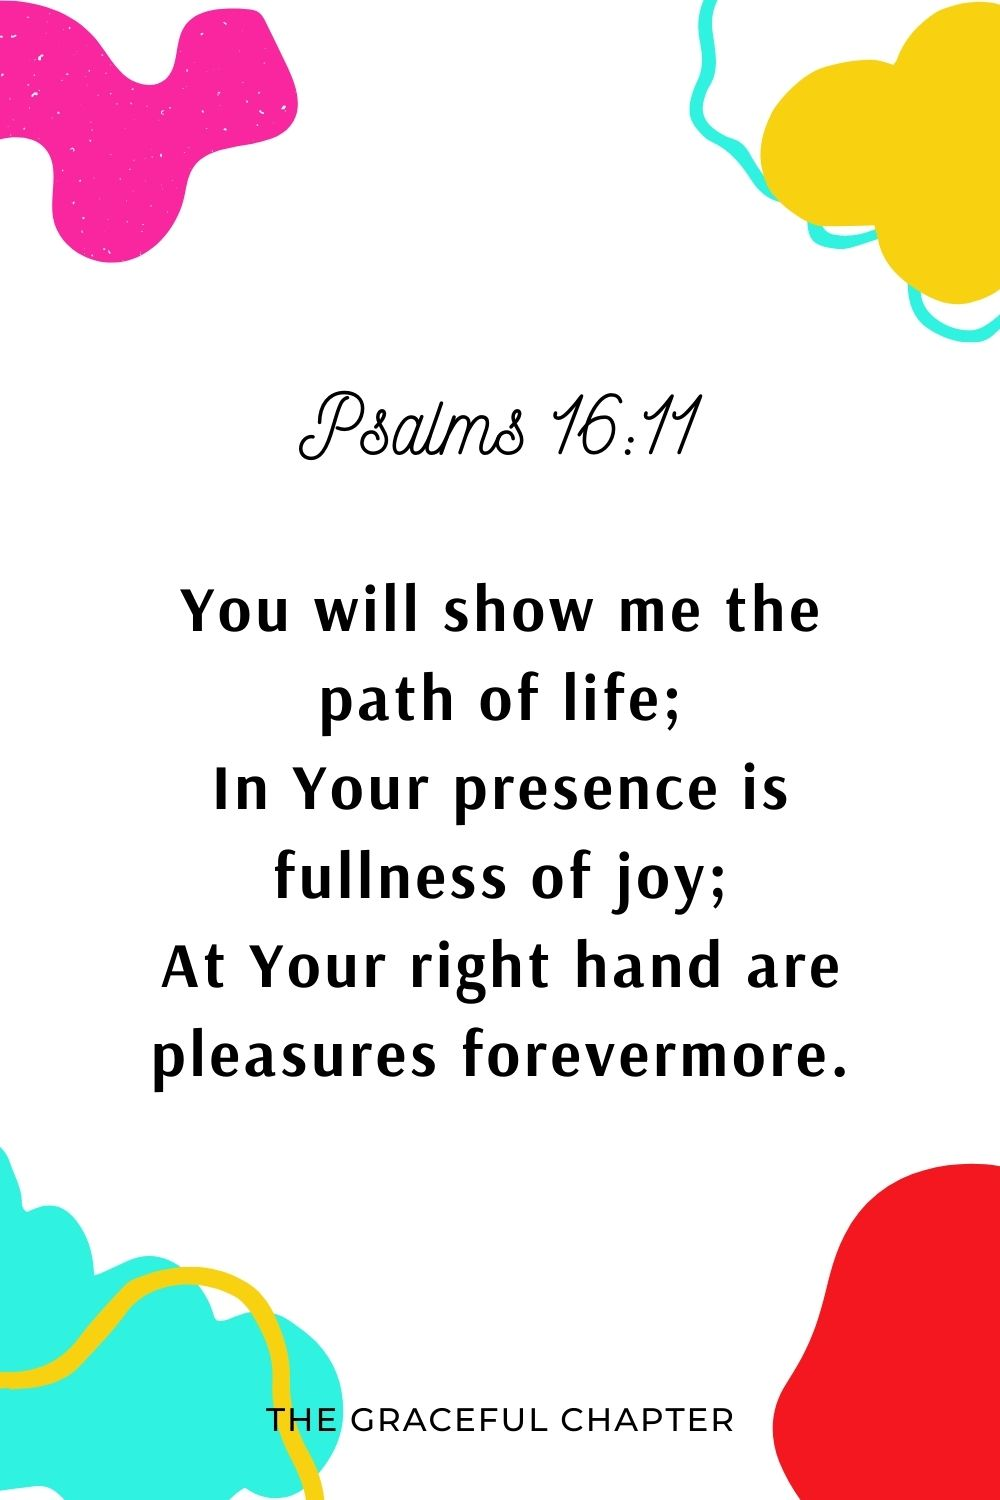 You will show me the path of life; In Your presence is fullness of joy; At Your right hand are pleasures forevermore. Psalms 16:11